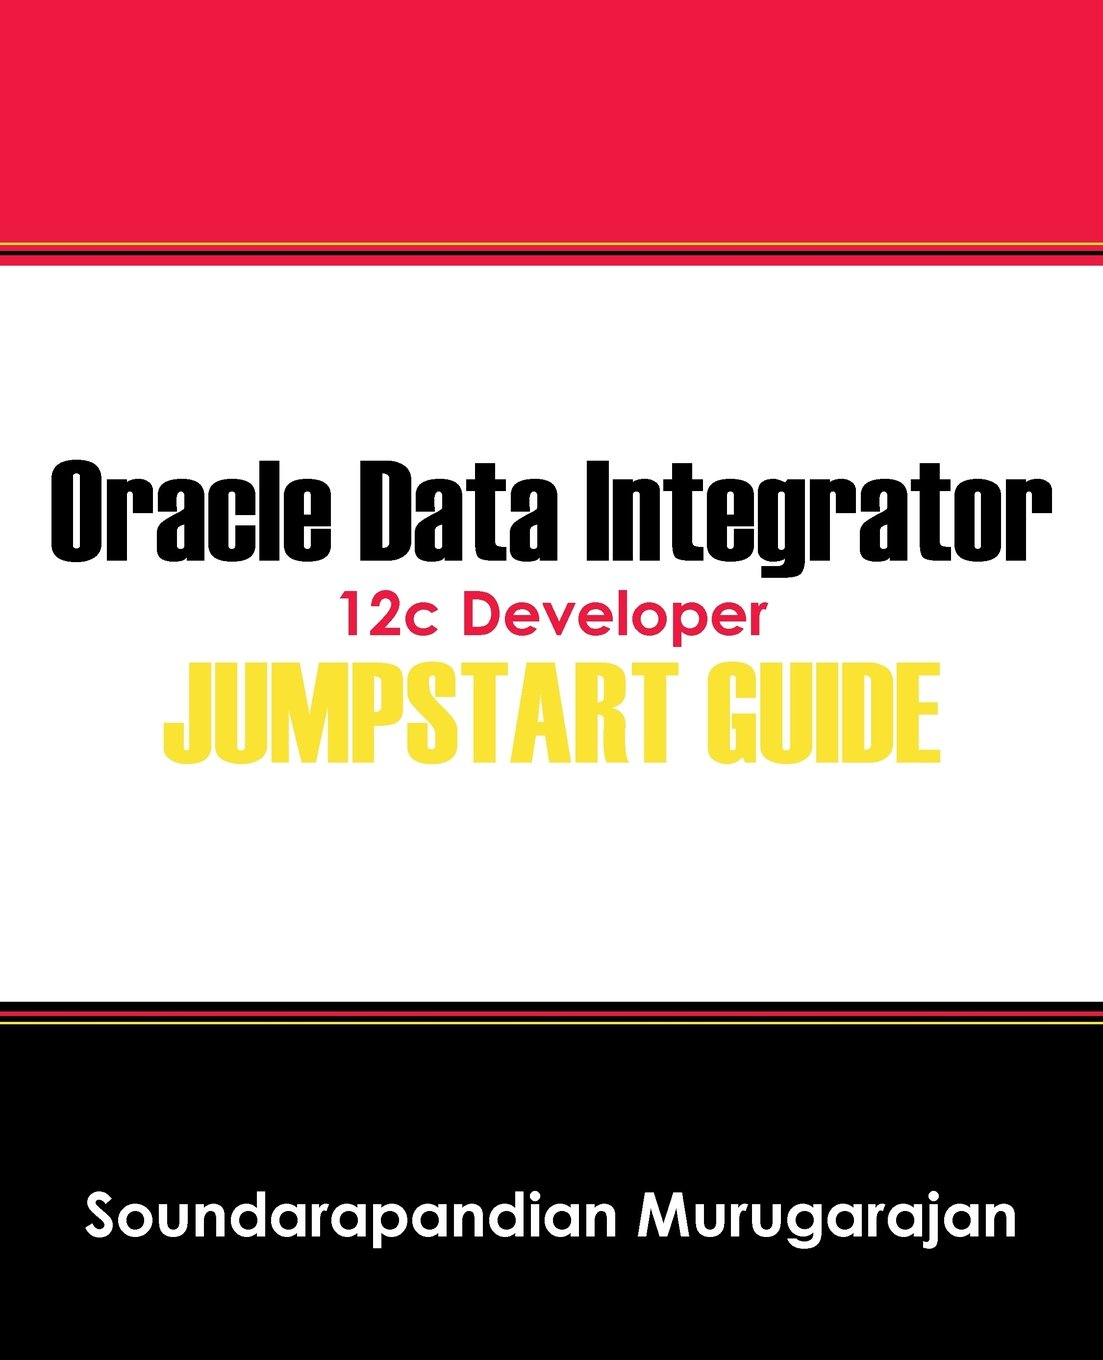 Oracle Data Integrator 12c Developer Jump Start Guide Practical Electronics Tutorial Soundarapandian Murugarajan 9781478743408 Books